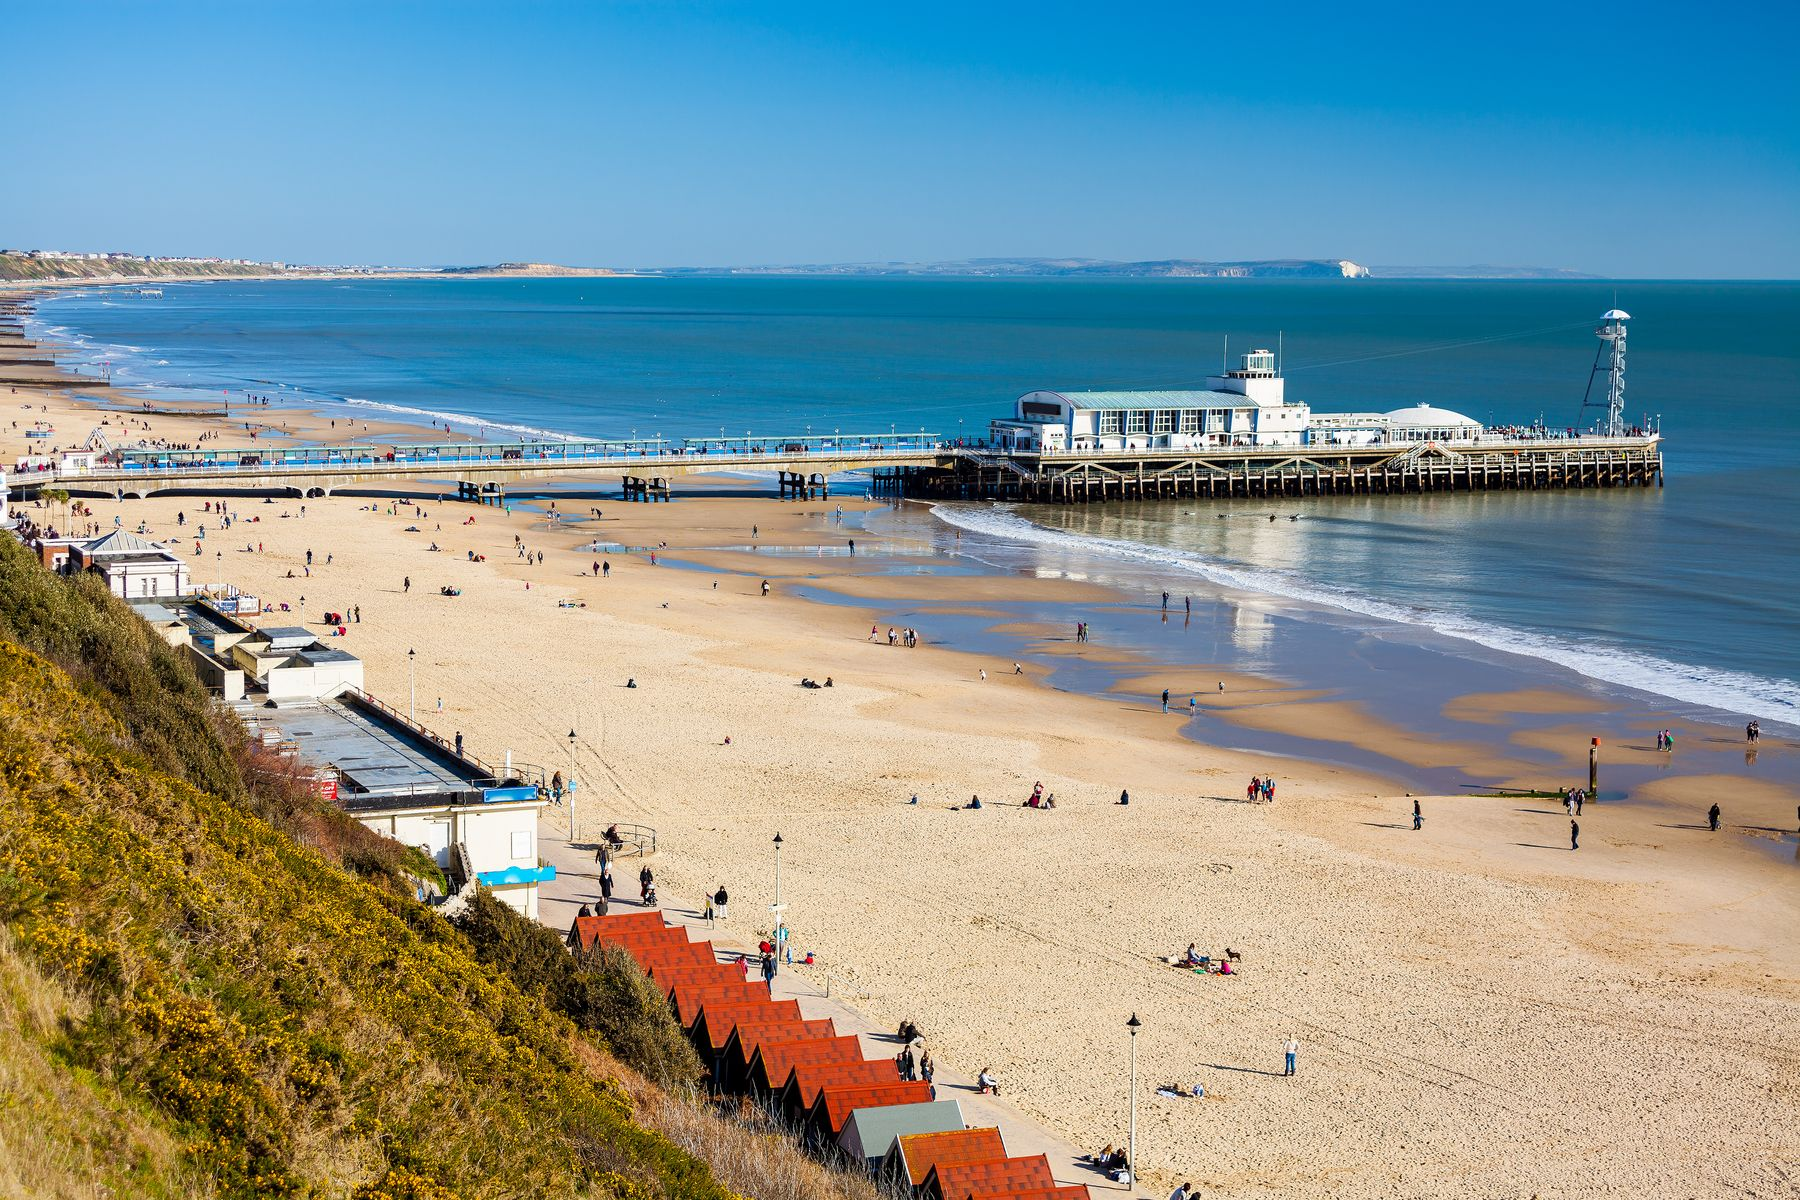 Picture shows Bournemouth Pier, the beach, and beach huts on a sunny day, with people having fun on the sand.